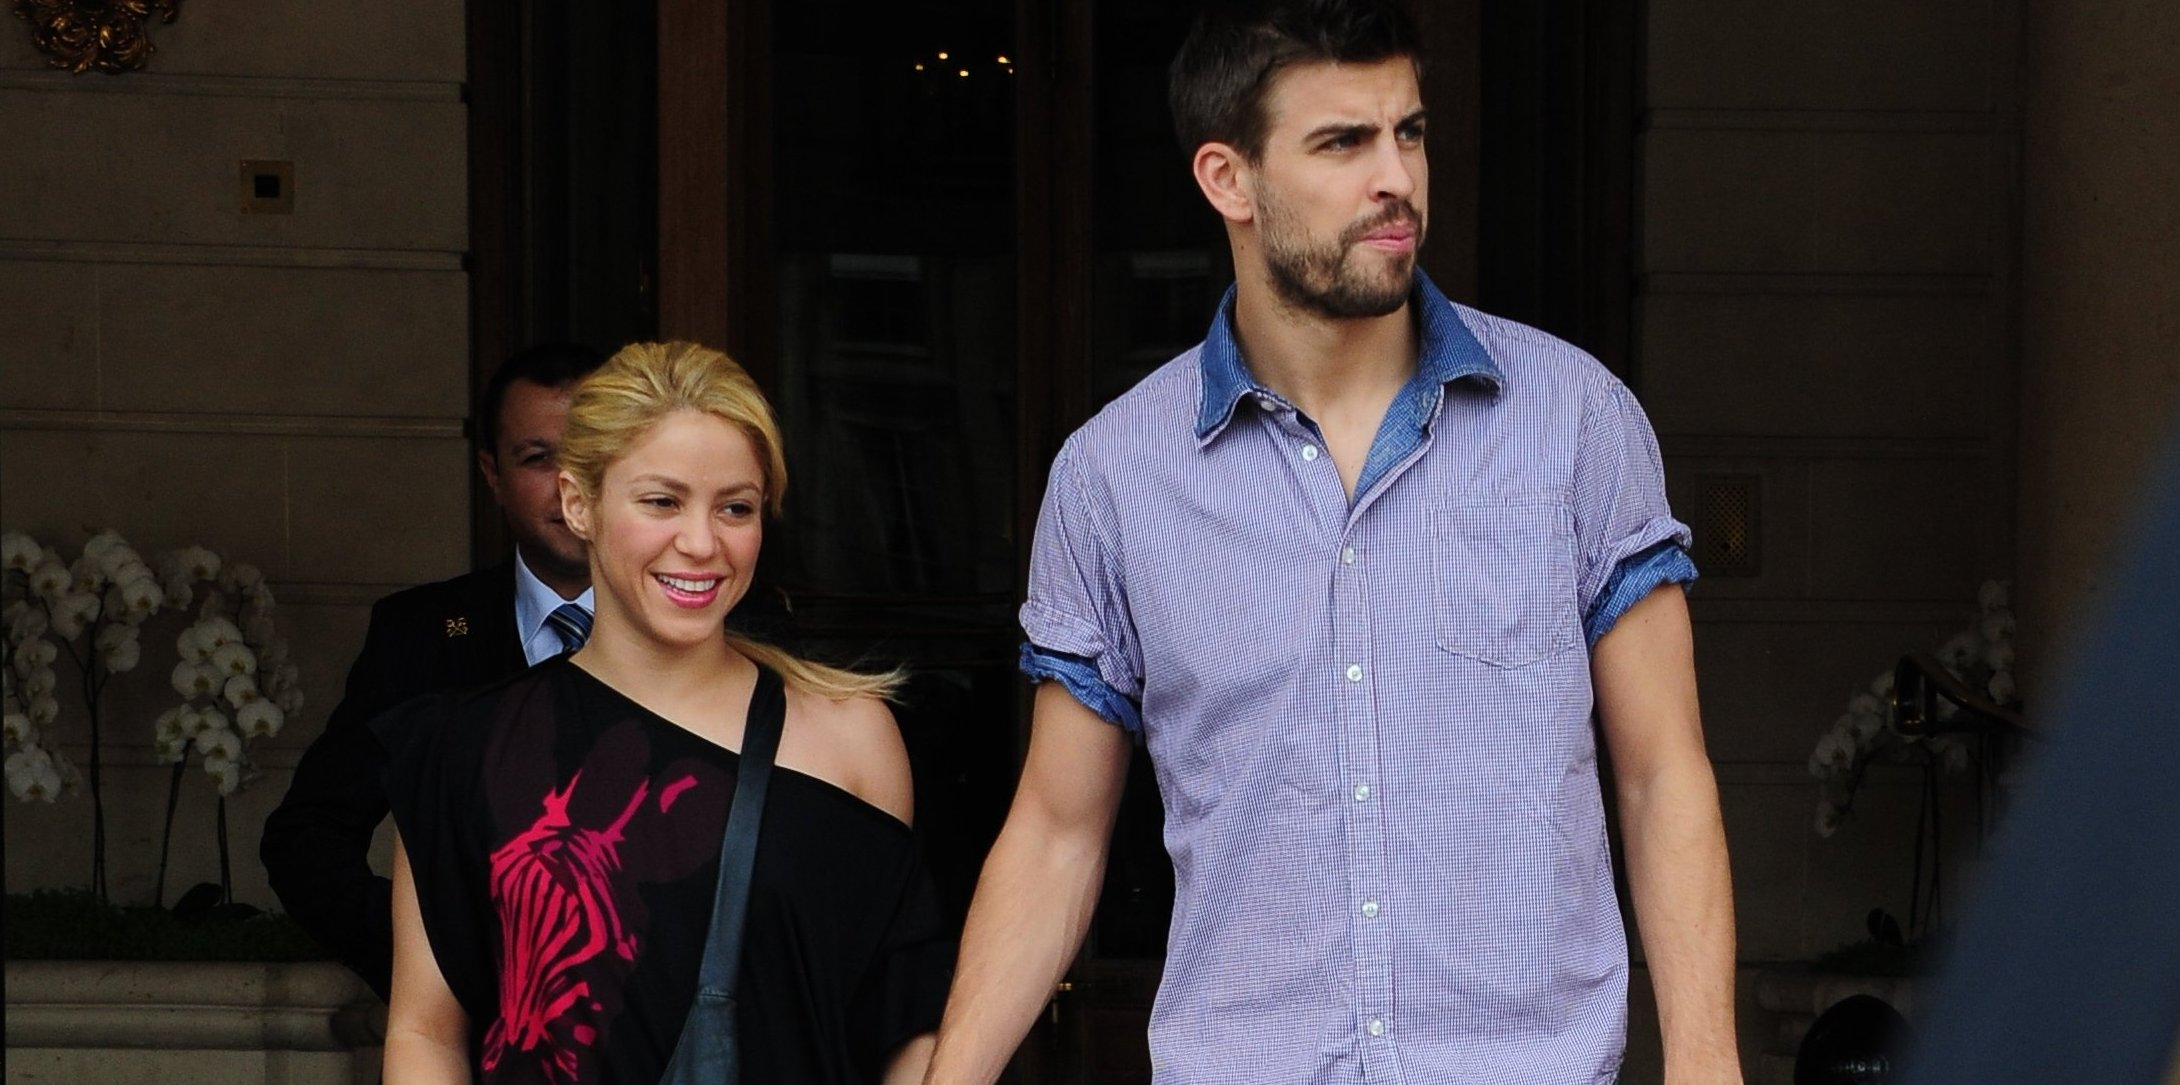 Shakira and Gerard Pique pictured - Paris